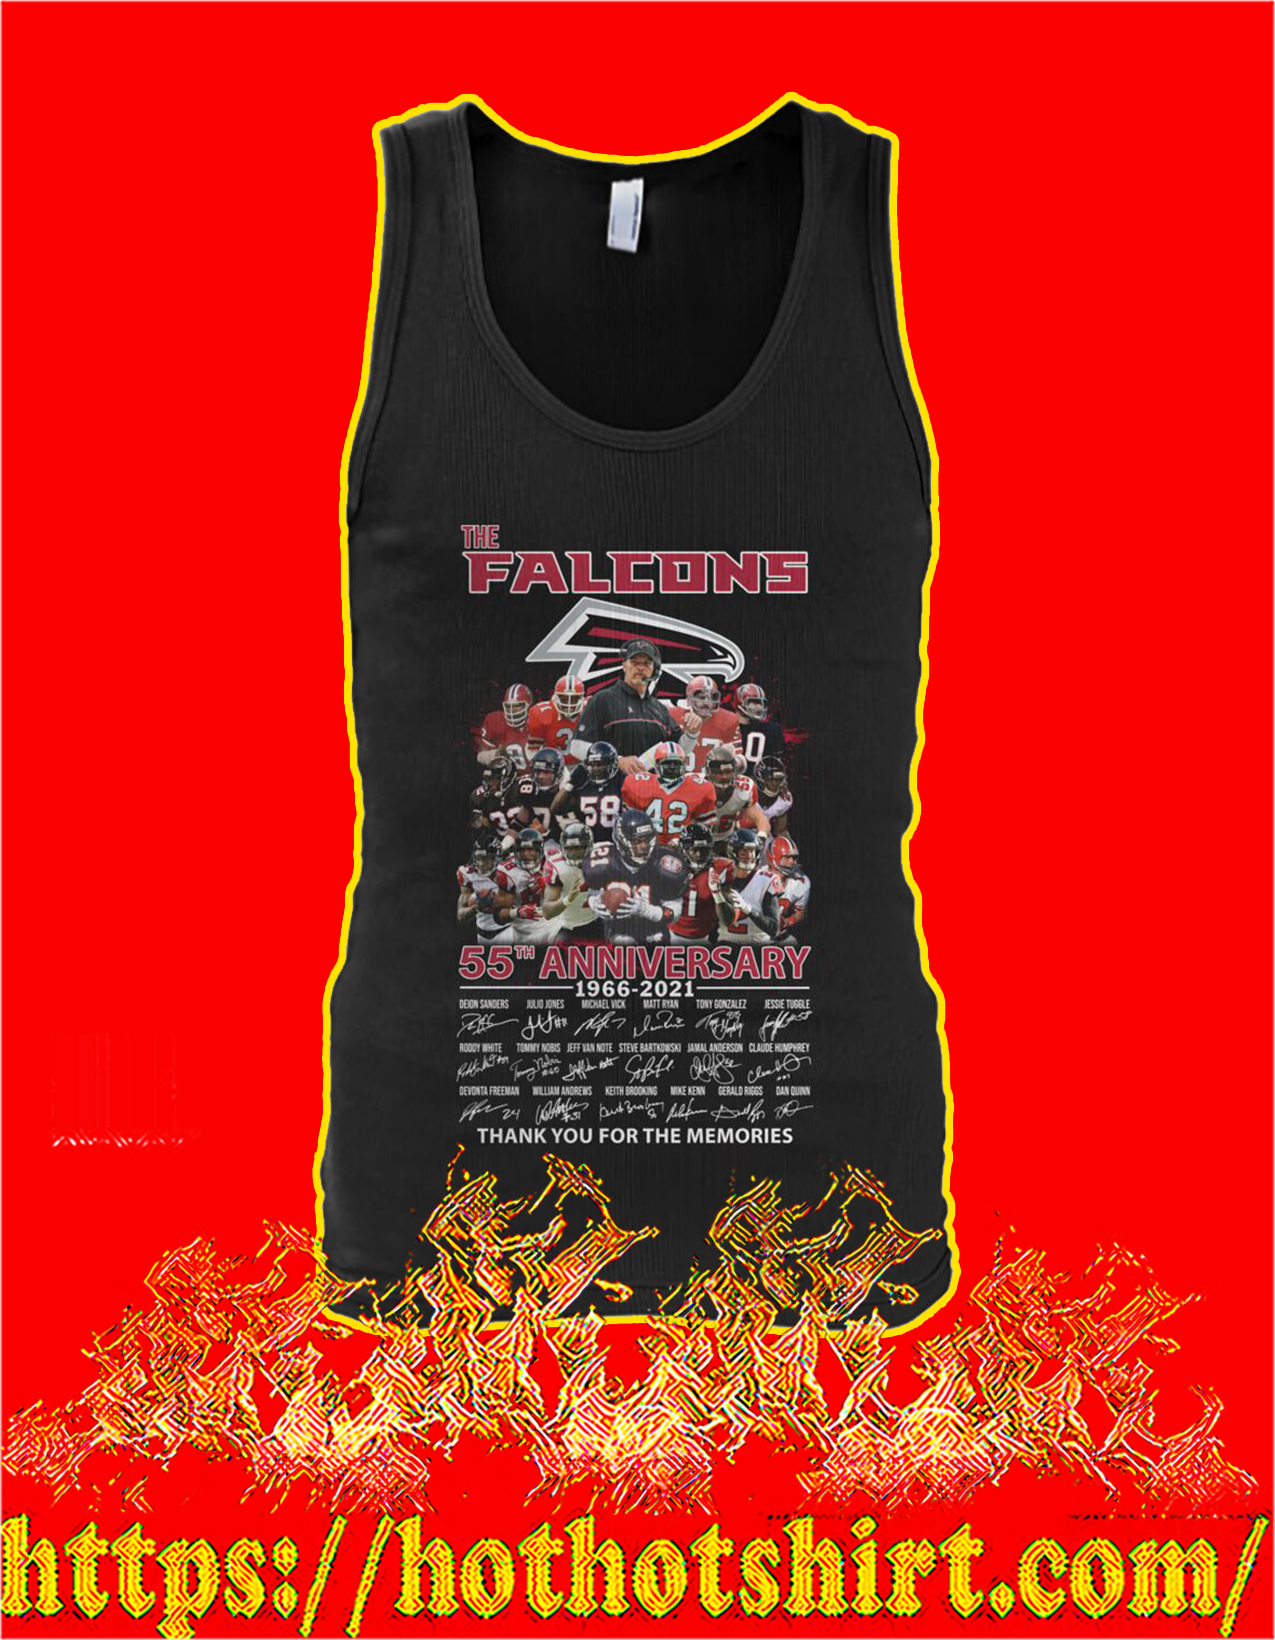 The falcons 55th anniversary thank you for the memories tank top